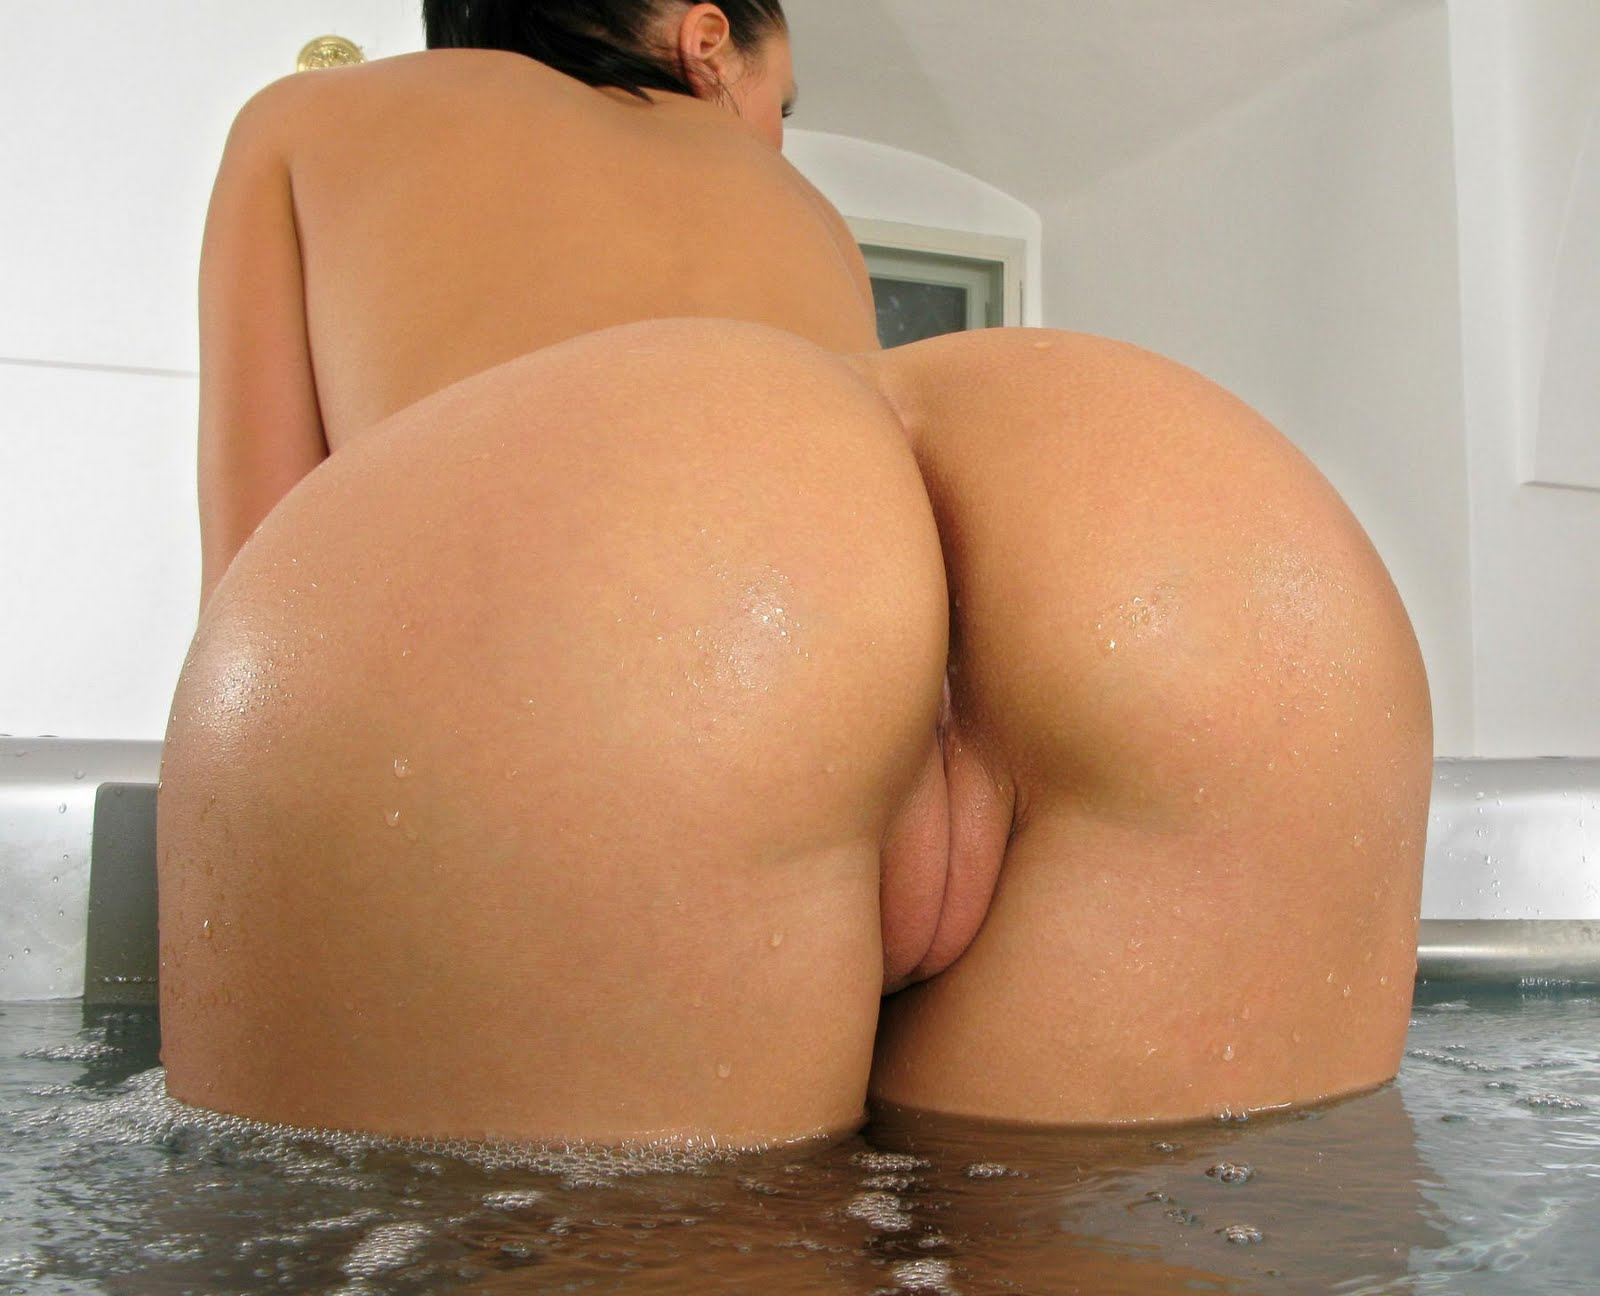 Wet big ass pictures